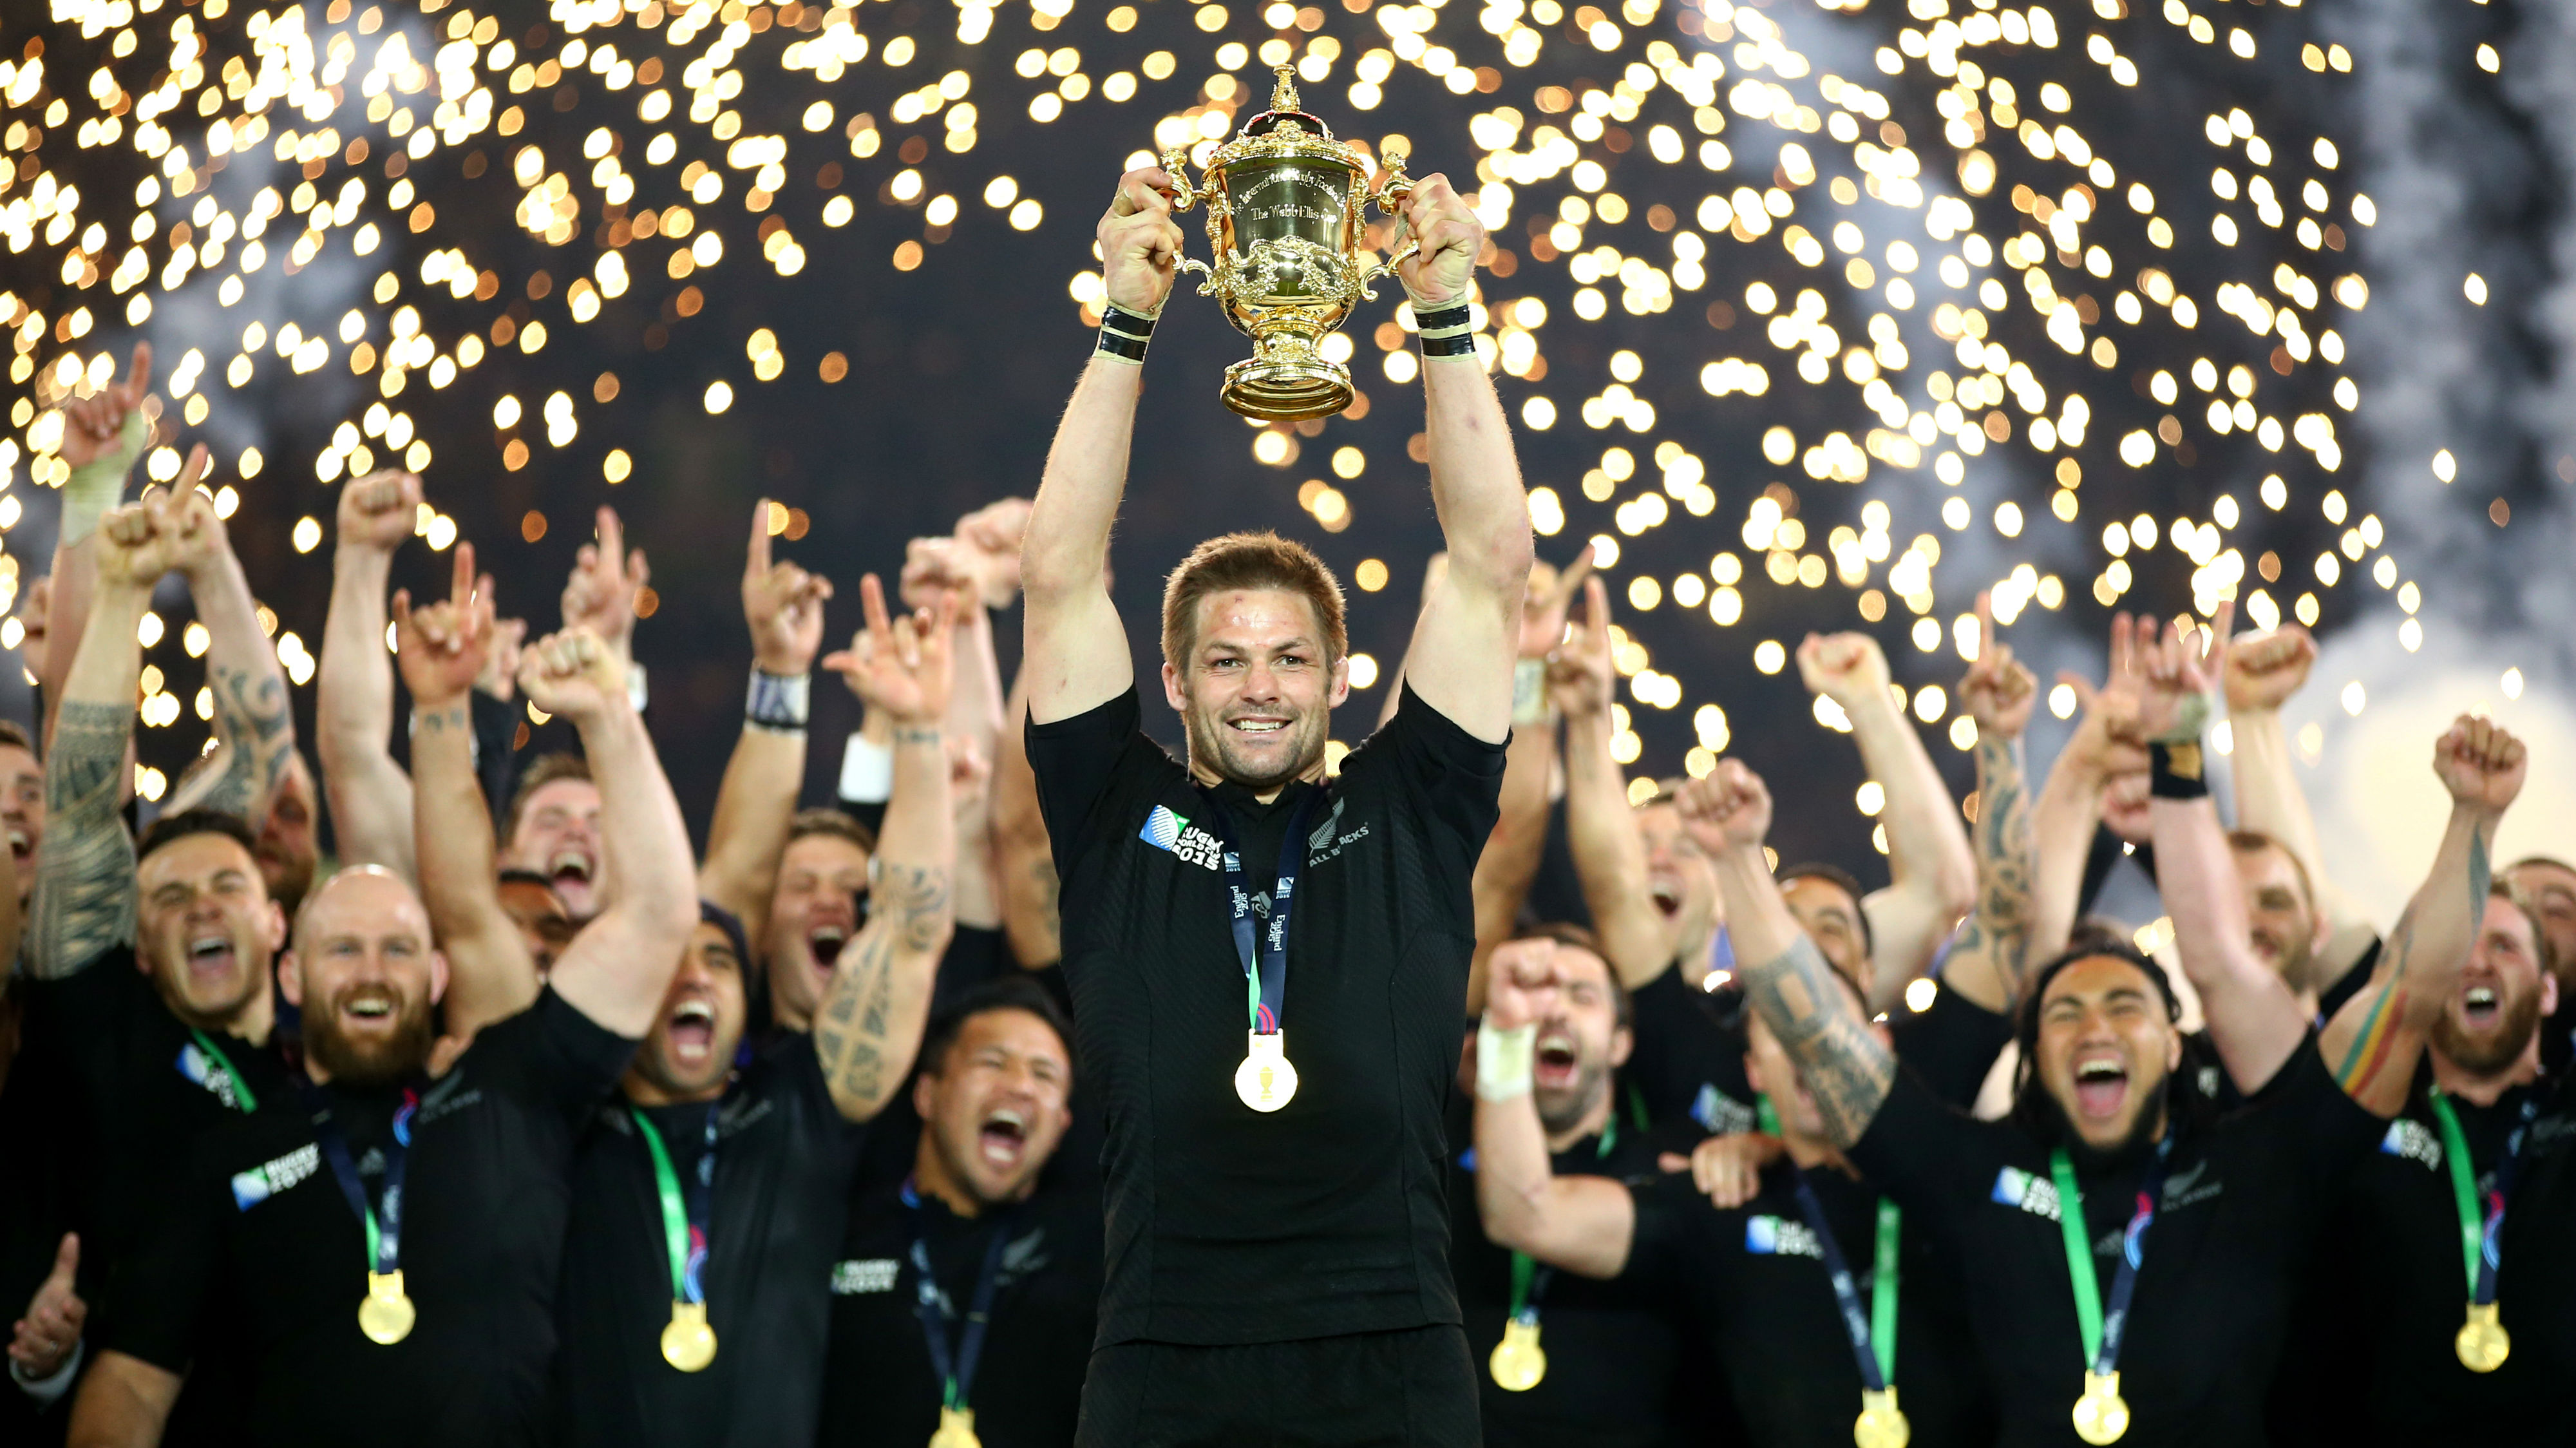 ichie McCaw of the New Zealand All Blacks lifts the Webb Ellis Cup after victory in the 2015 Rugby World Cup Final. (Photo \ Getty Images)